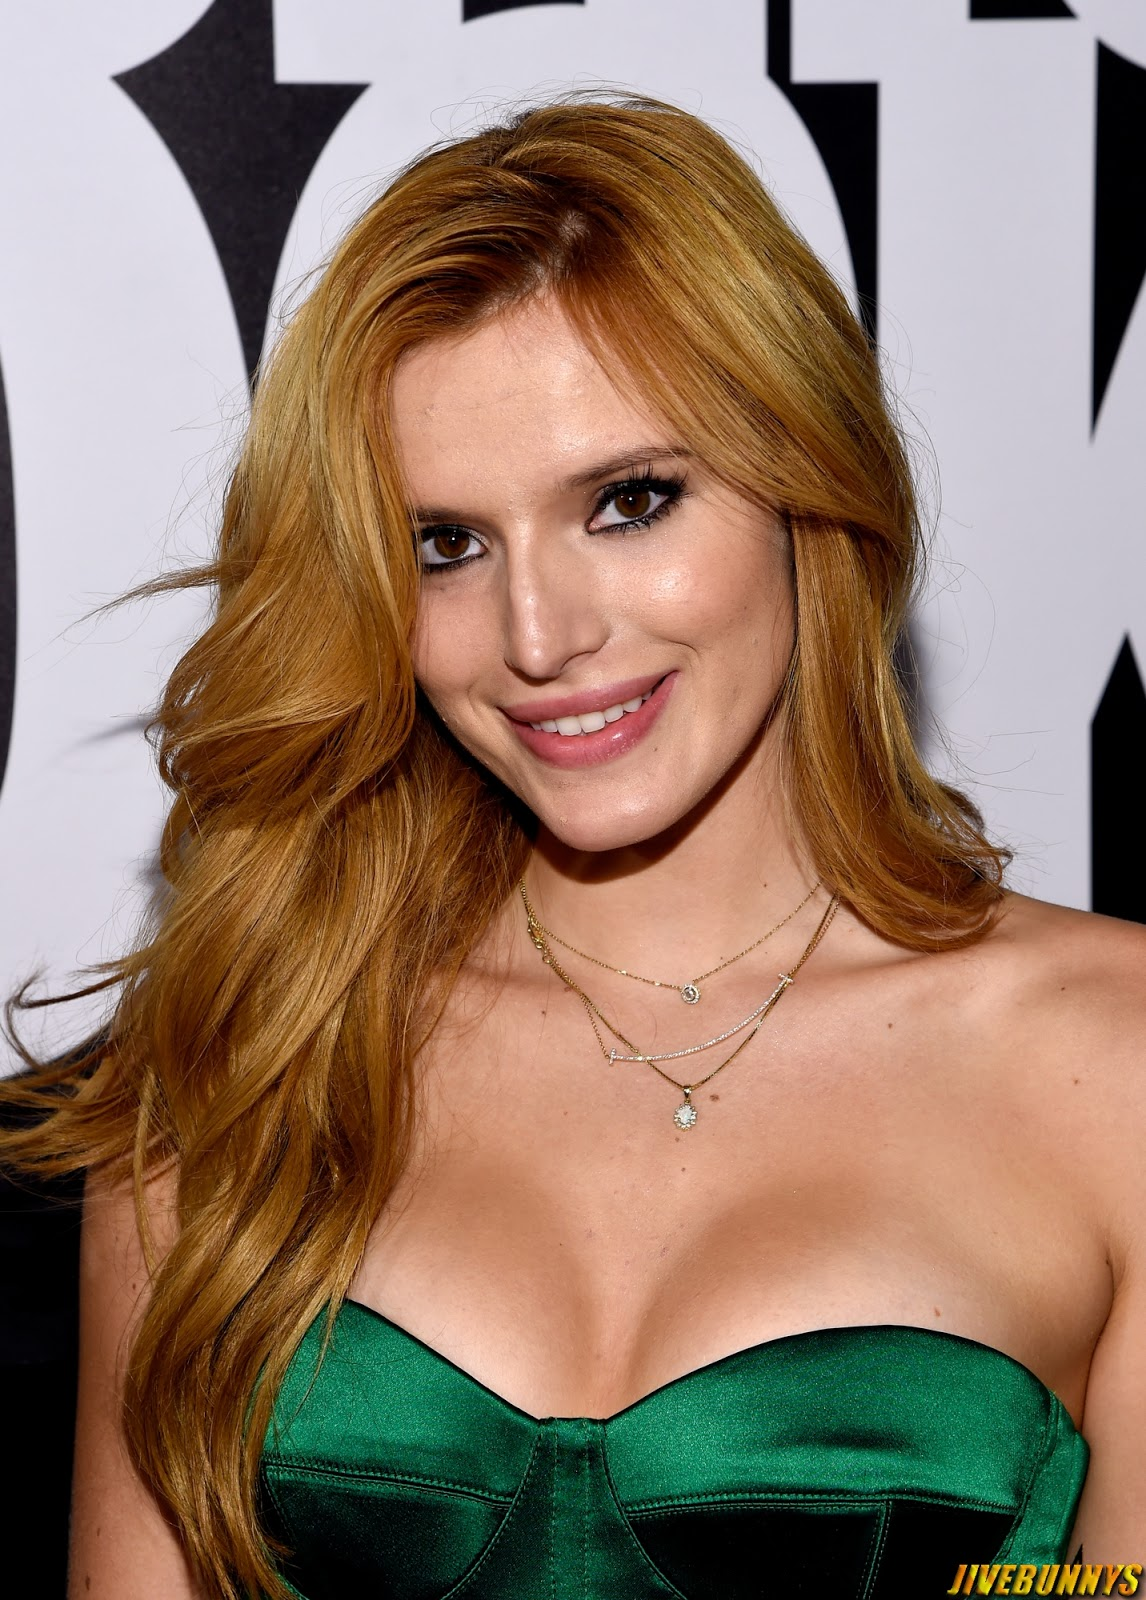 Bella Thorne - Fashion Rocks 2014 at the Barclays Center of Brooklyn - September 9, 2014